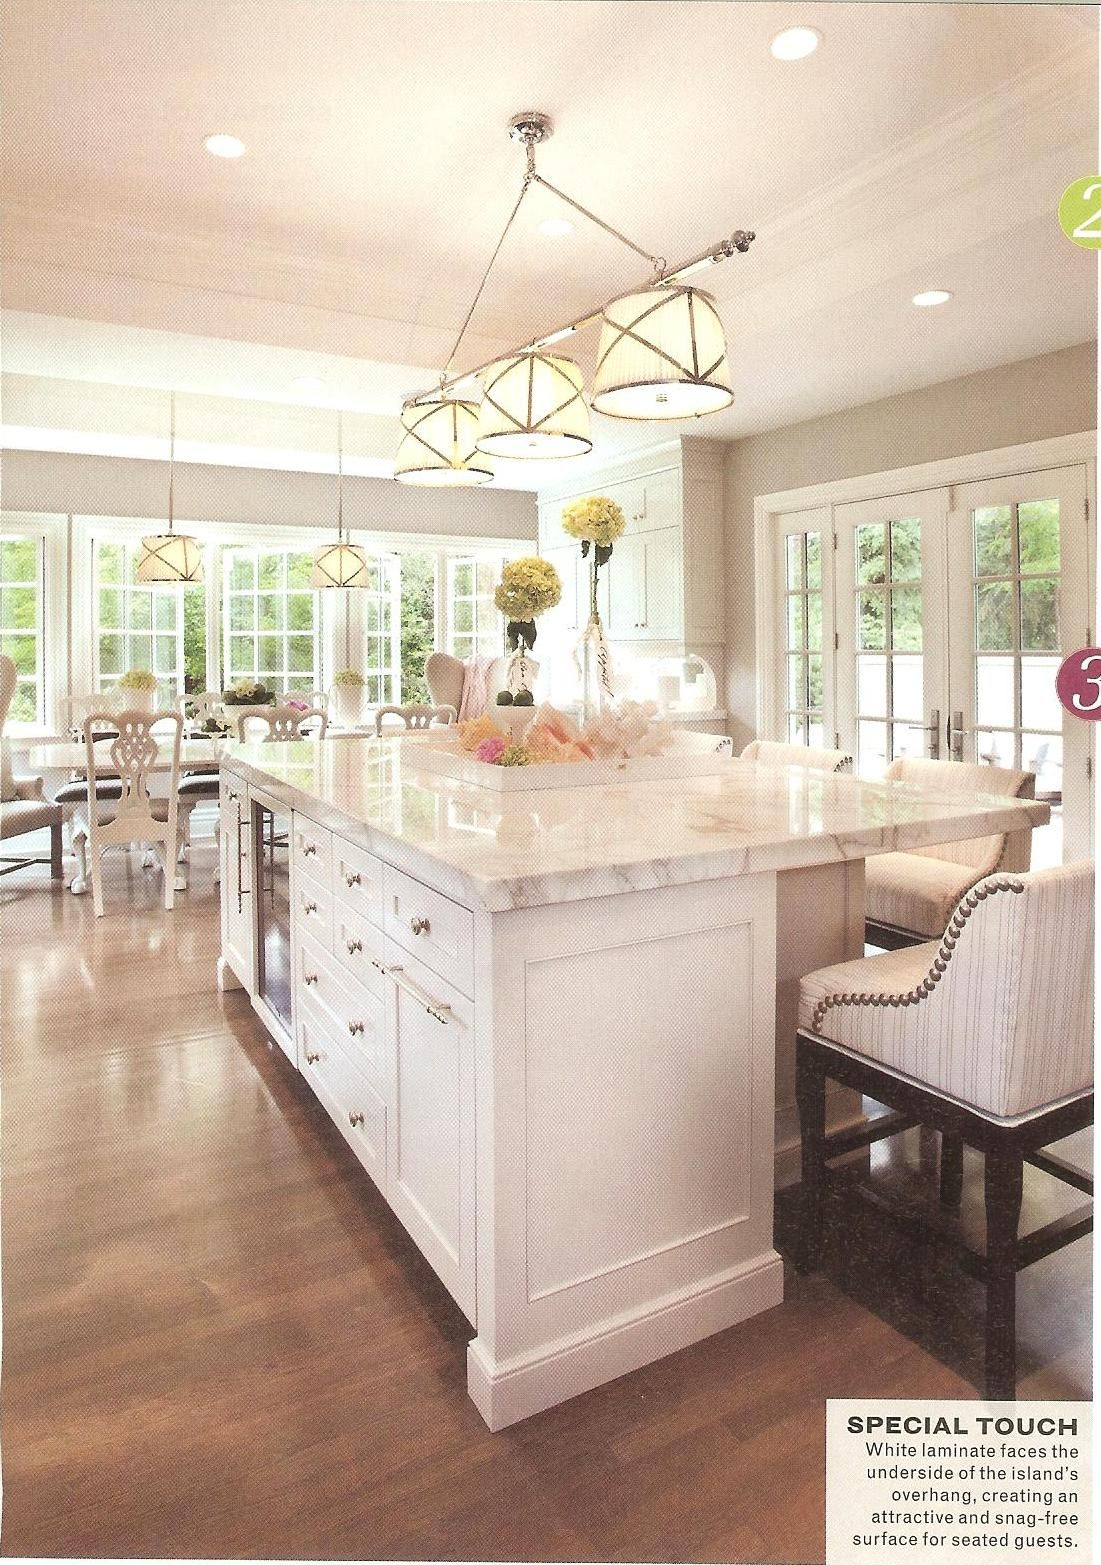 The Paint On The Cabinets Is U0027light Pewteru0027 From Benjamin Moore @Pamela  Jensen Similar Right?